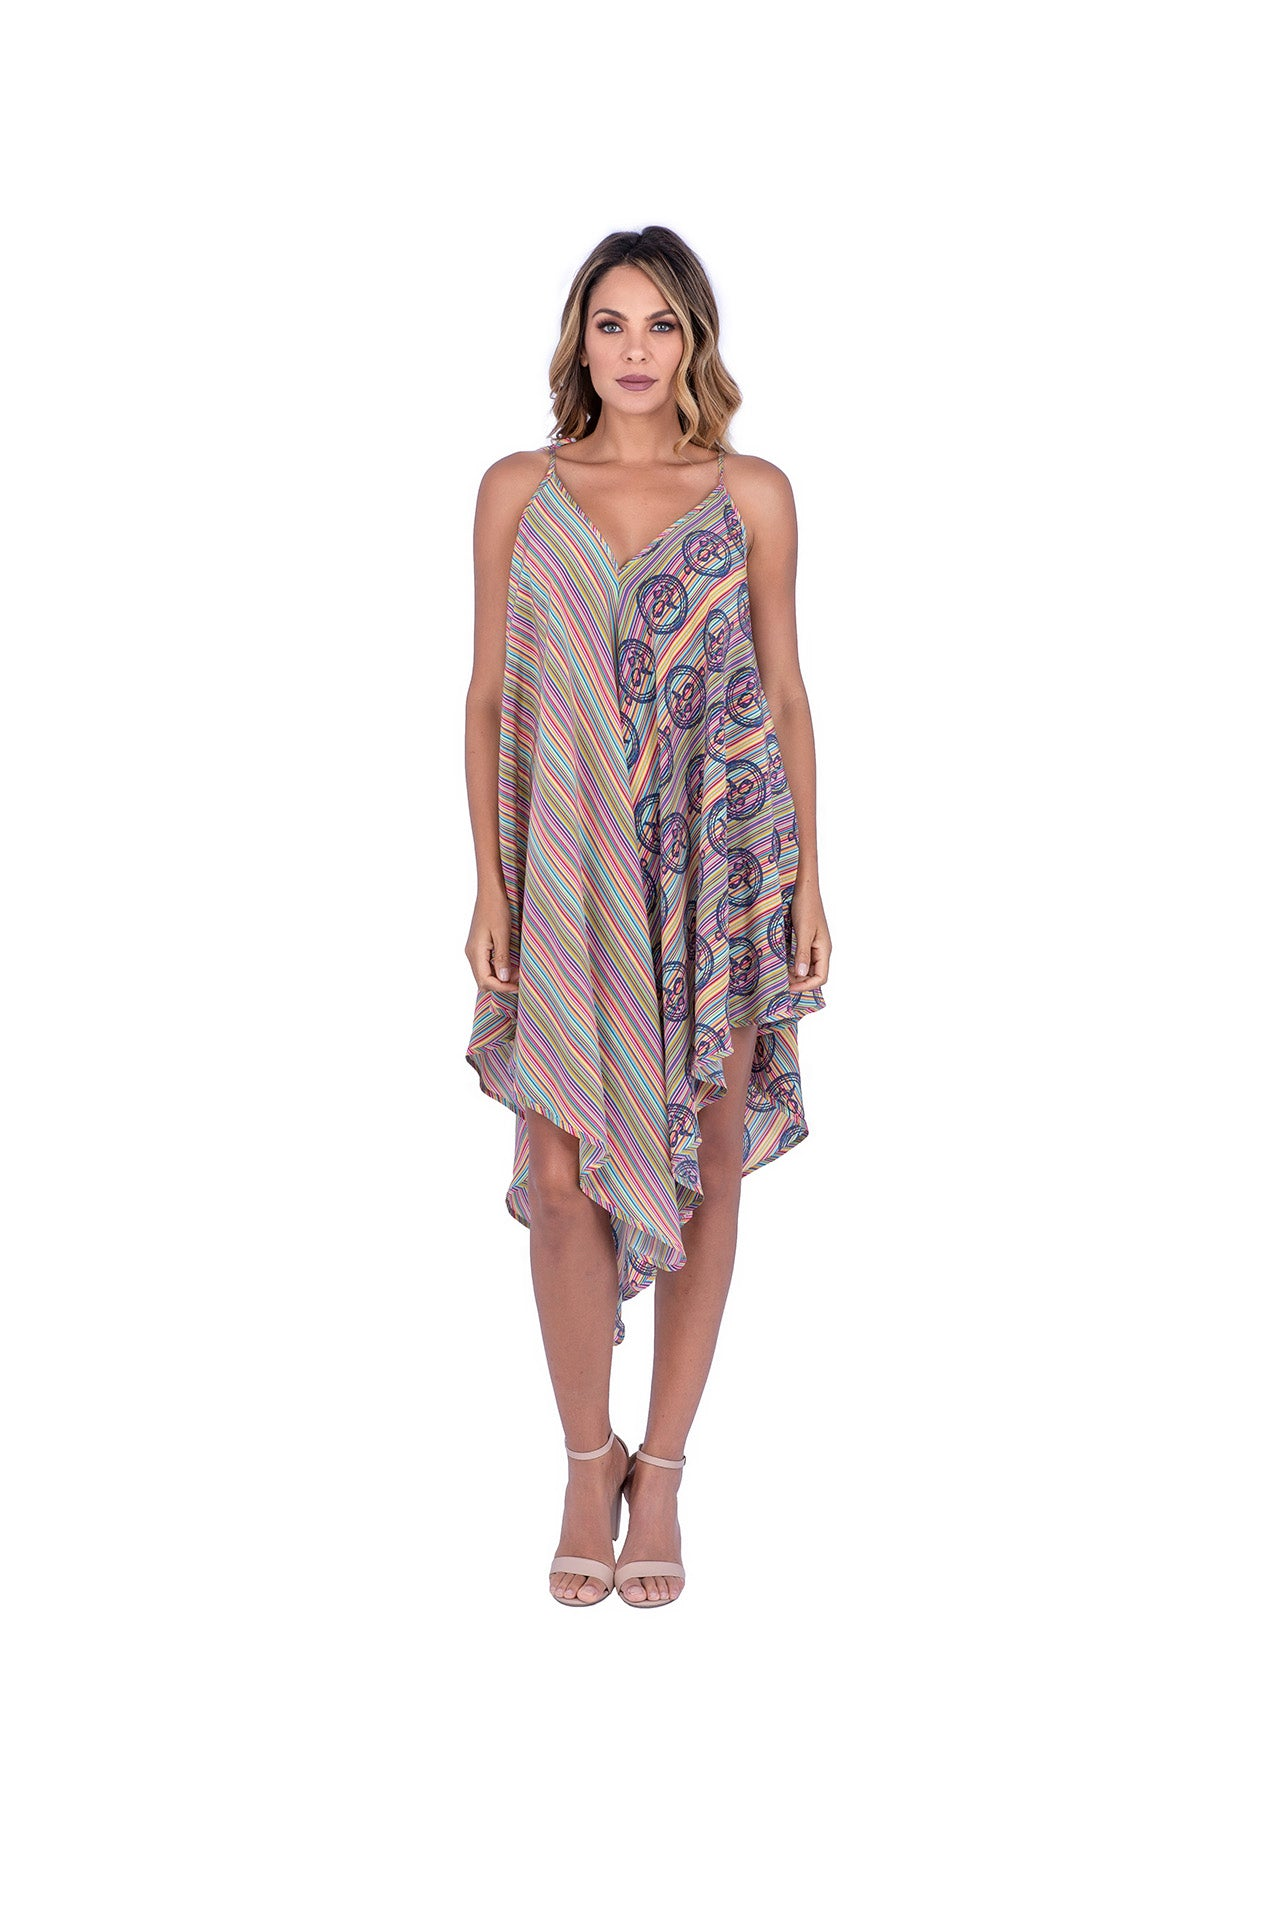 Lumini Silk Dress - Prisma Print Dresses - artTECA